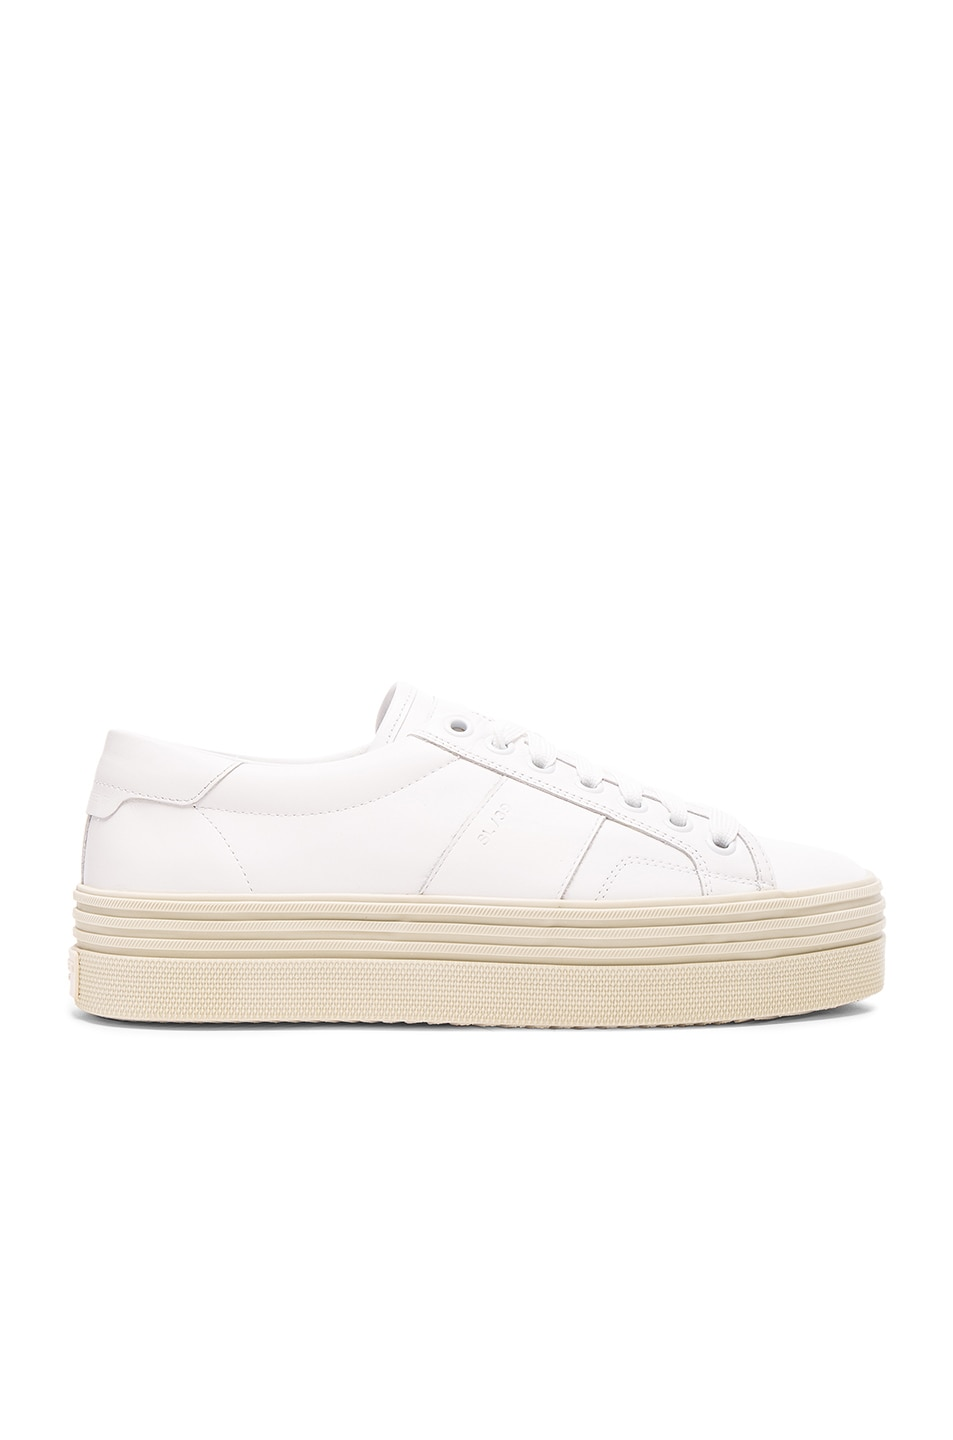 Image 1 of Saint Laurent Leather Court Classic Platform Sneakers in Off White